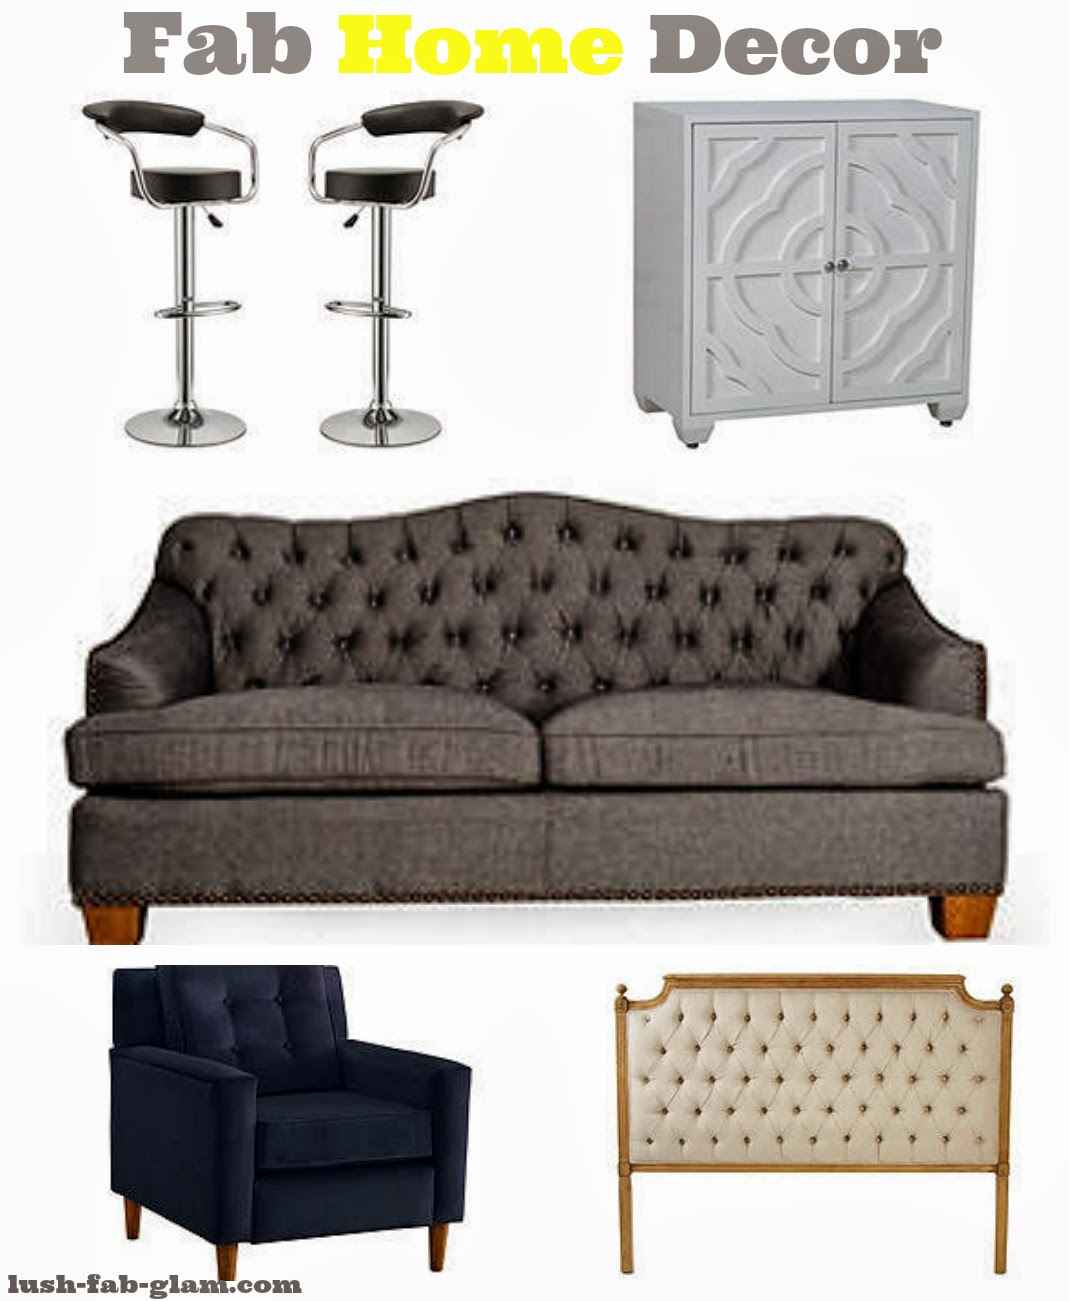 Lush fab glam blogazine fab deals friday shop for home for Furniture sales today